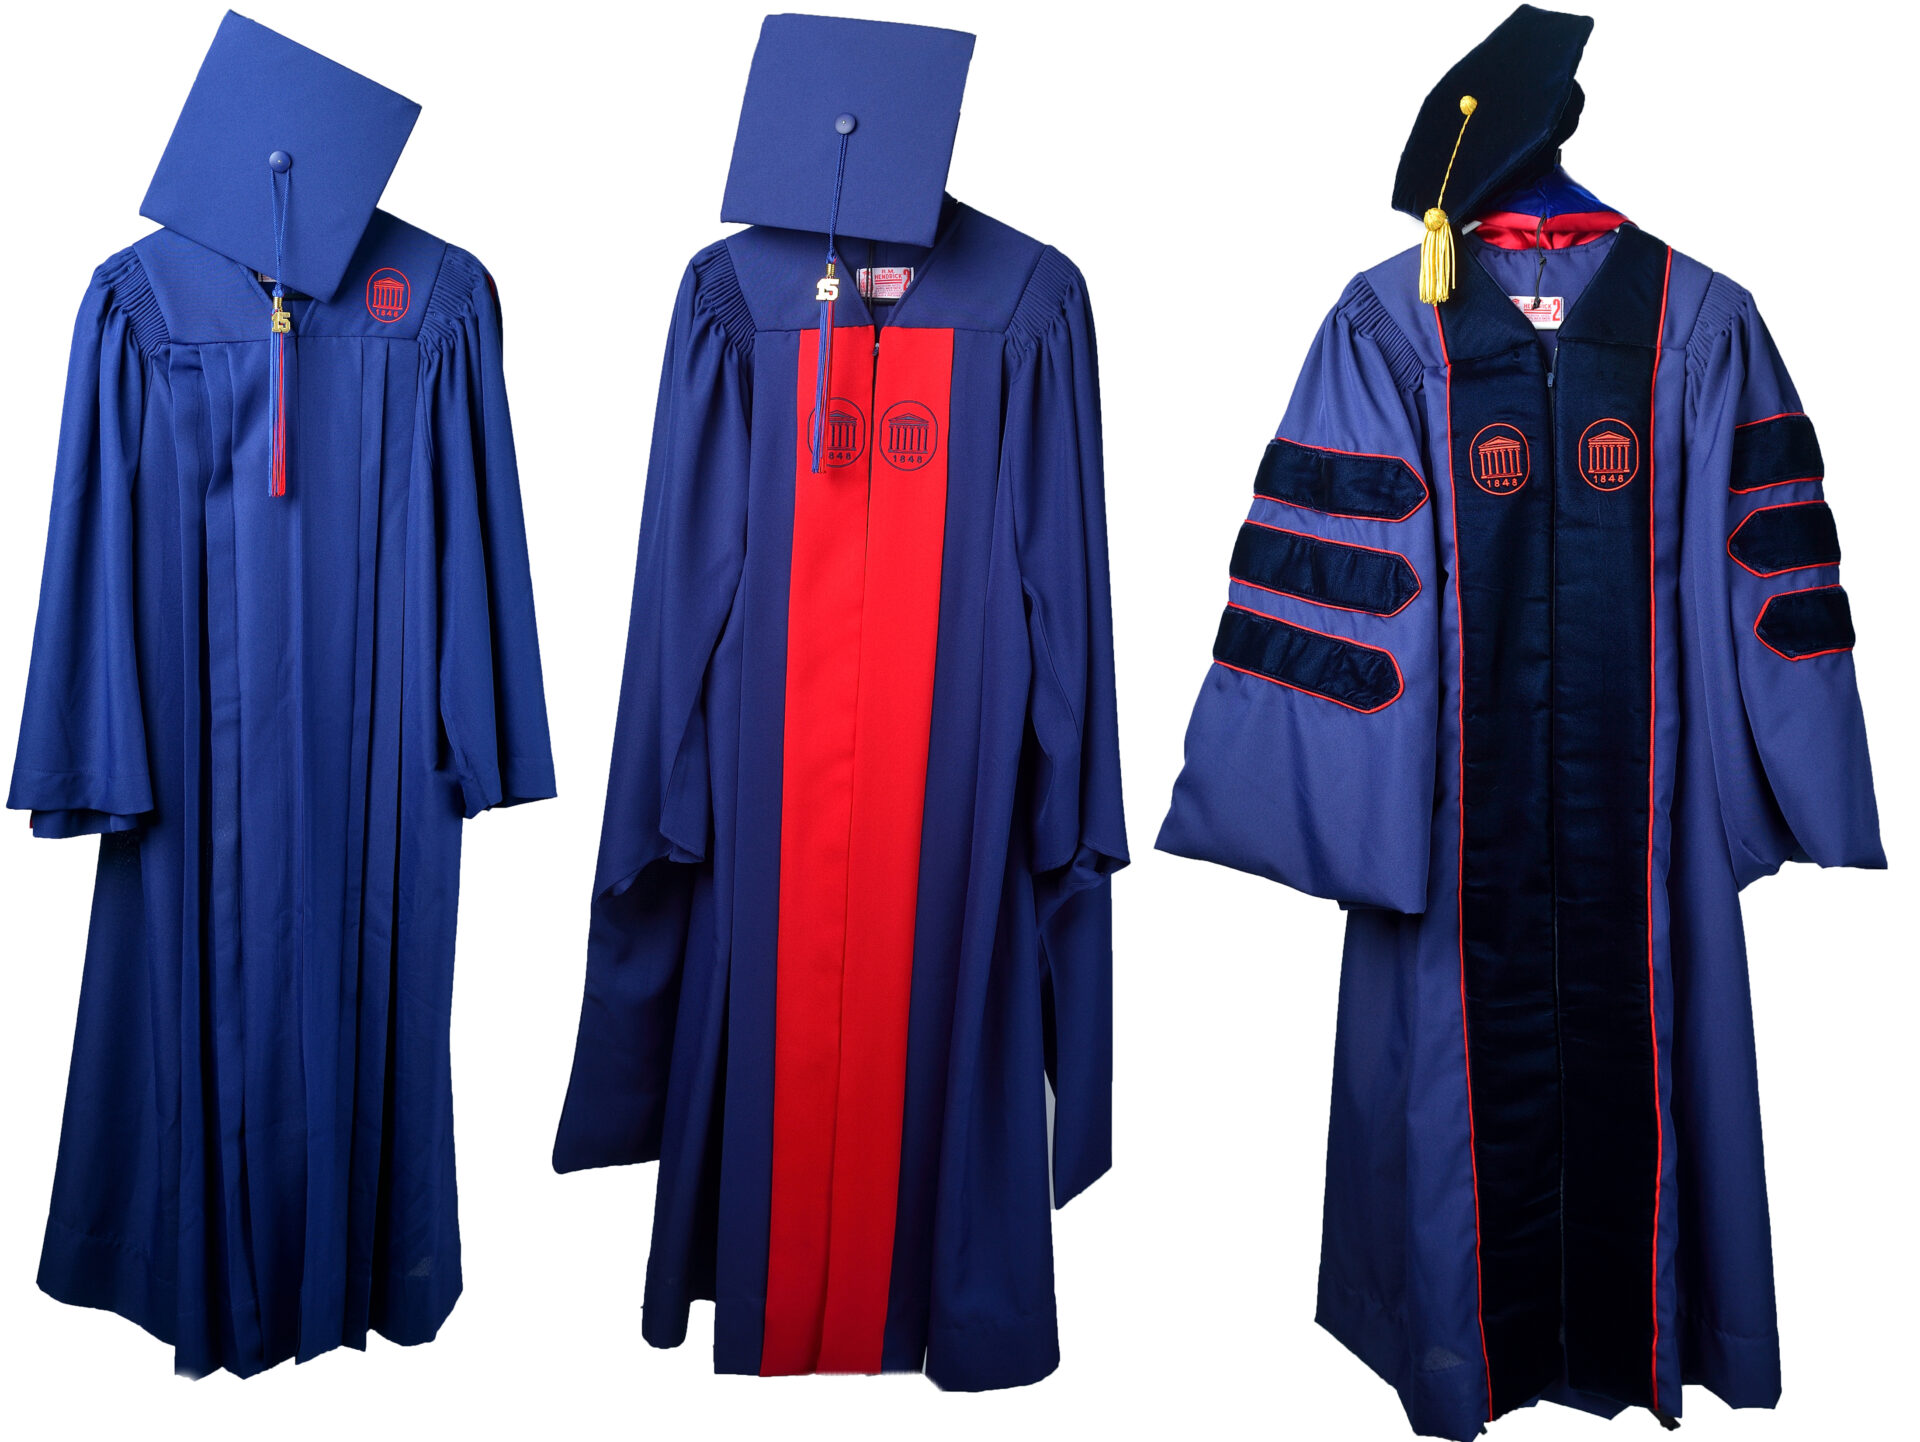 UM Announces New Graduation Regalia, Graduation Schedule ...